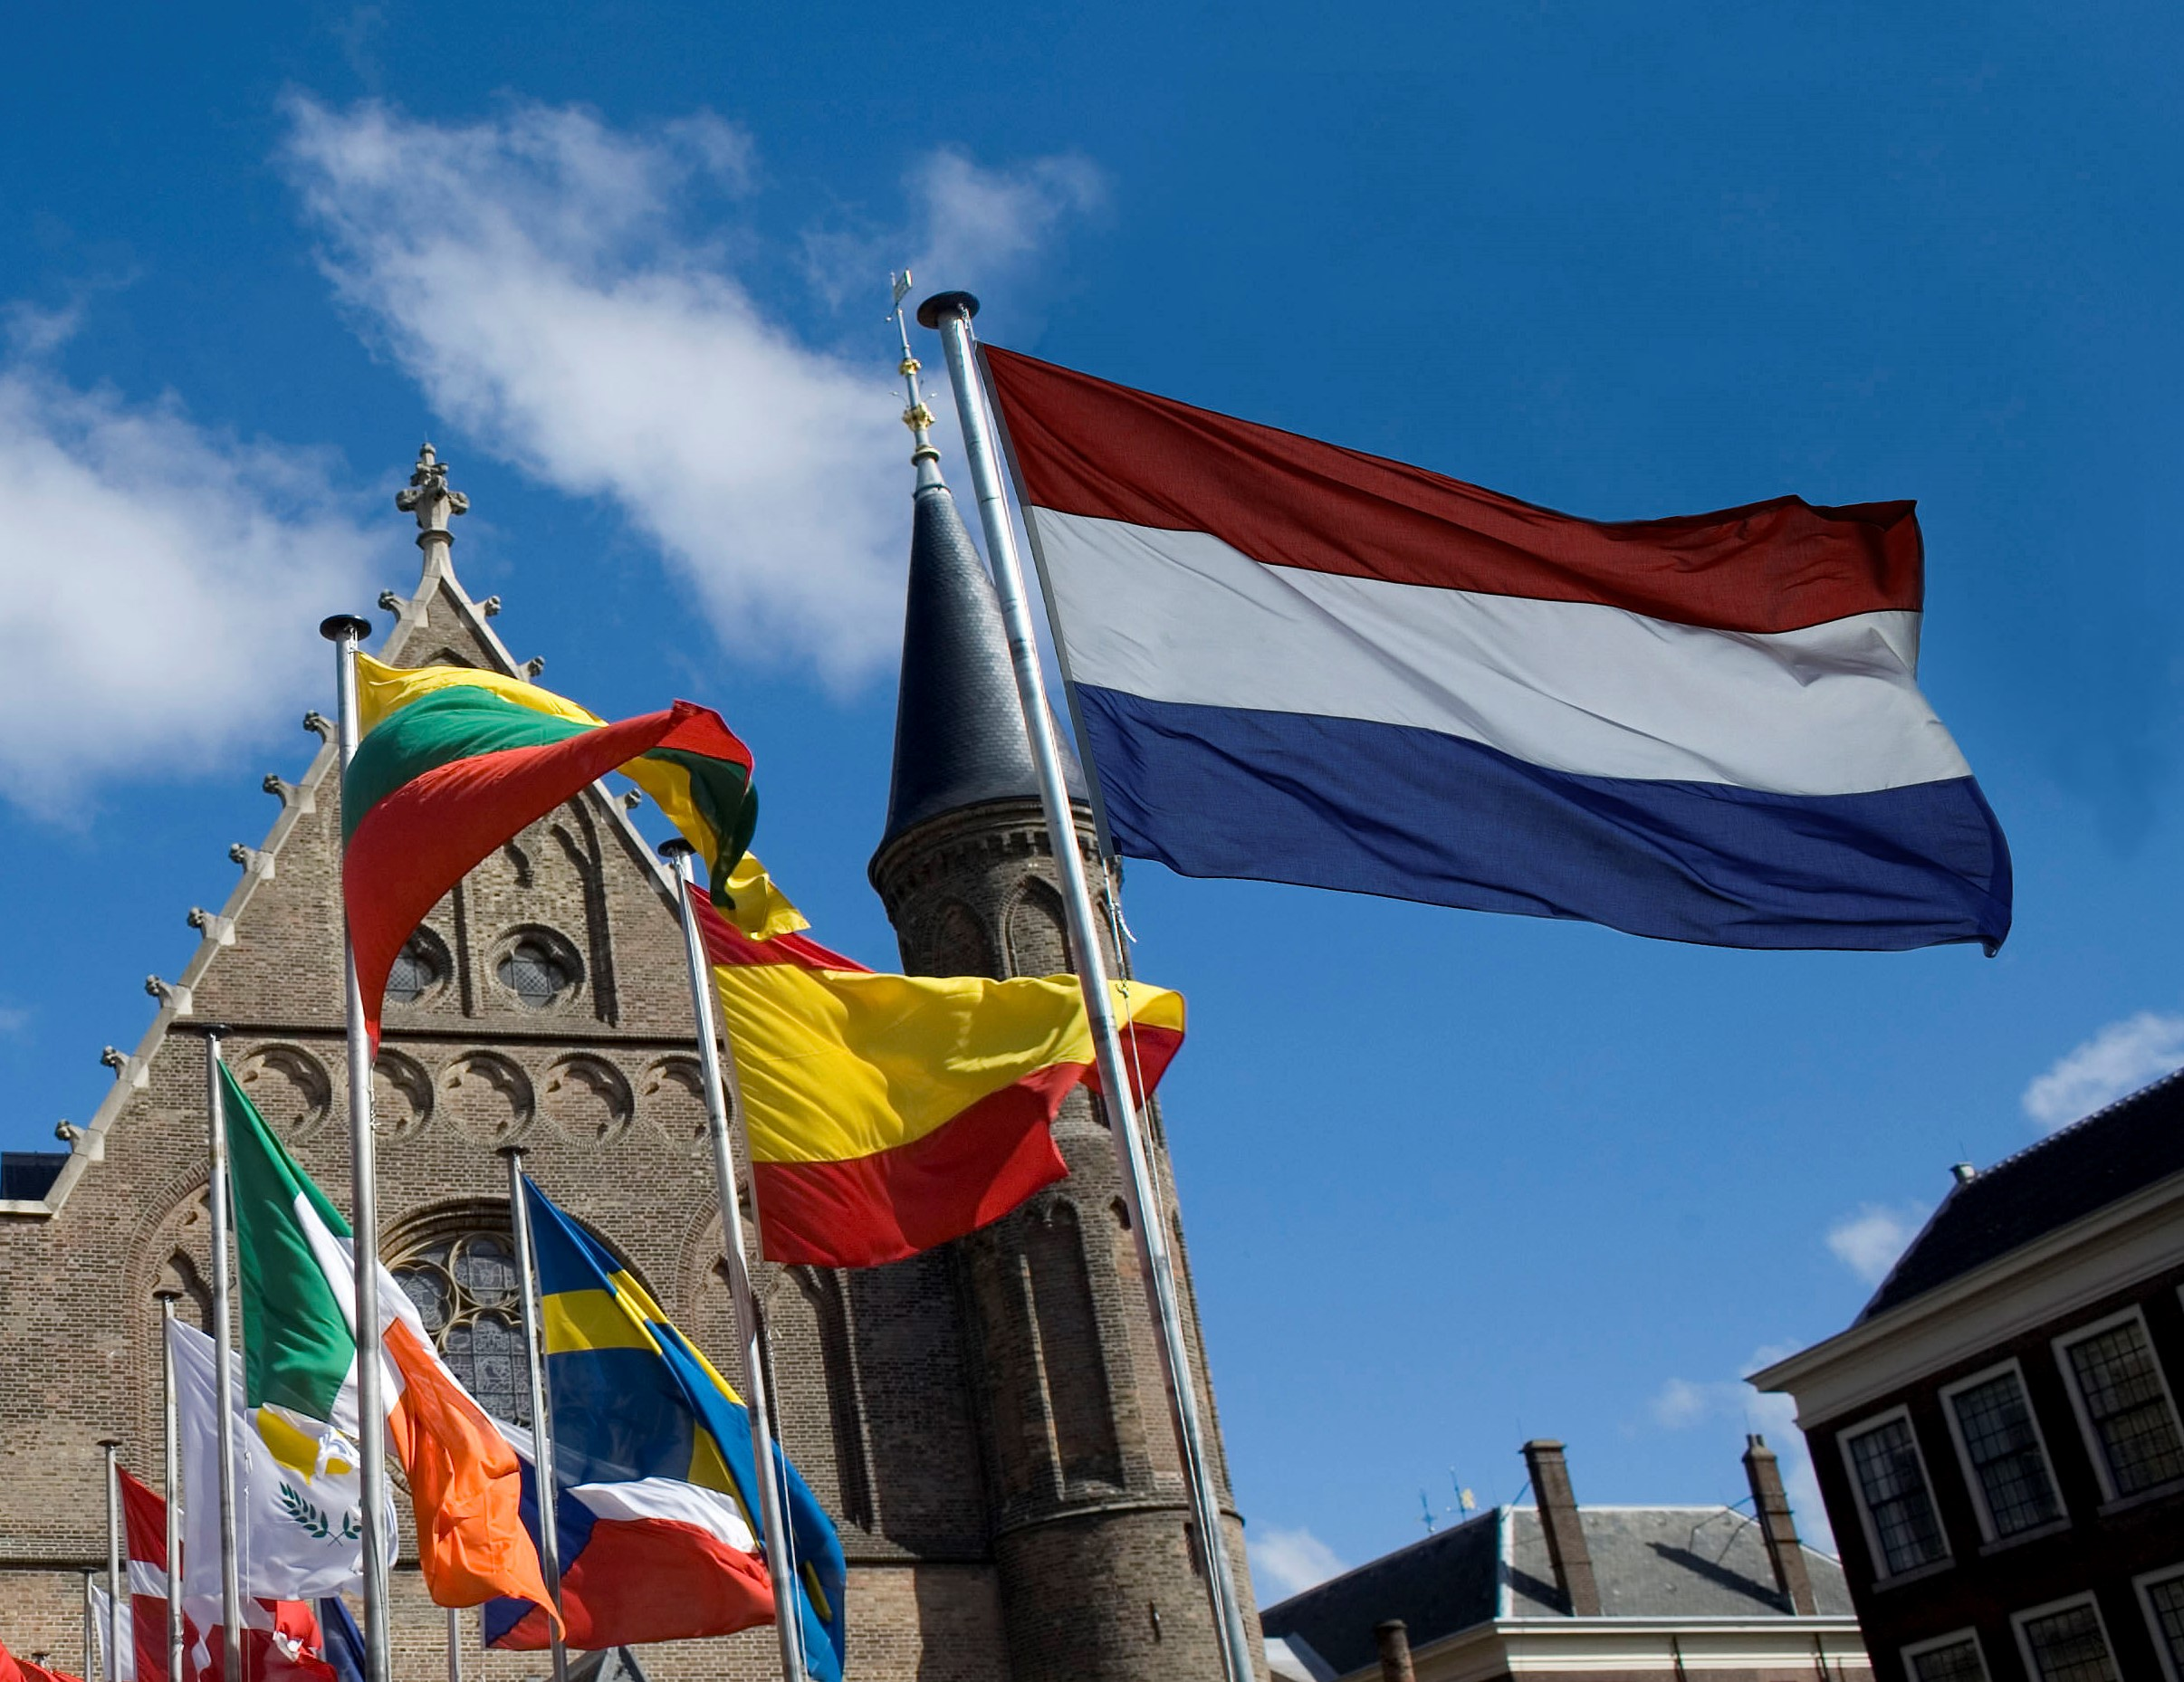 The Netherlands has the most competitive economy in Europe